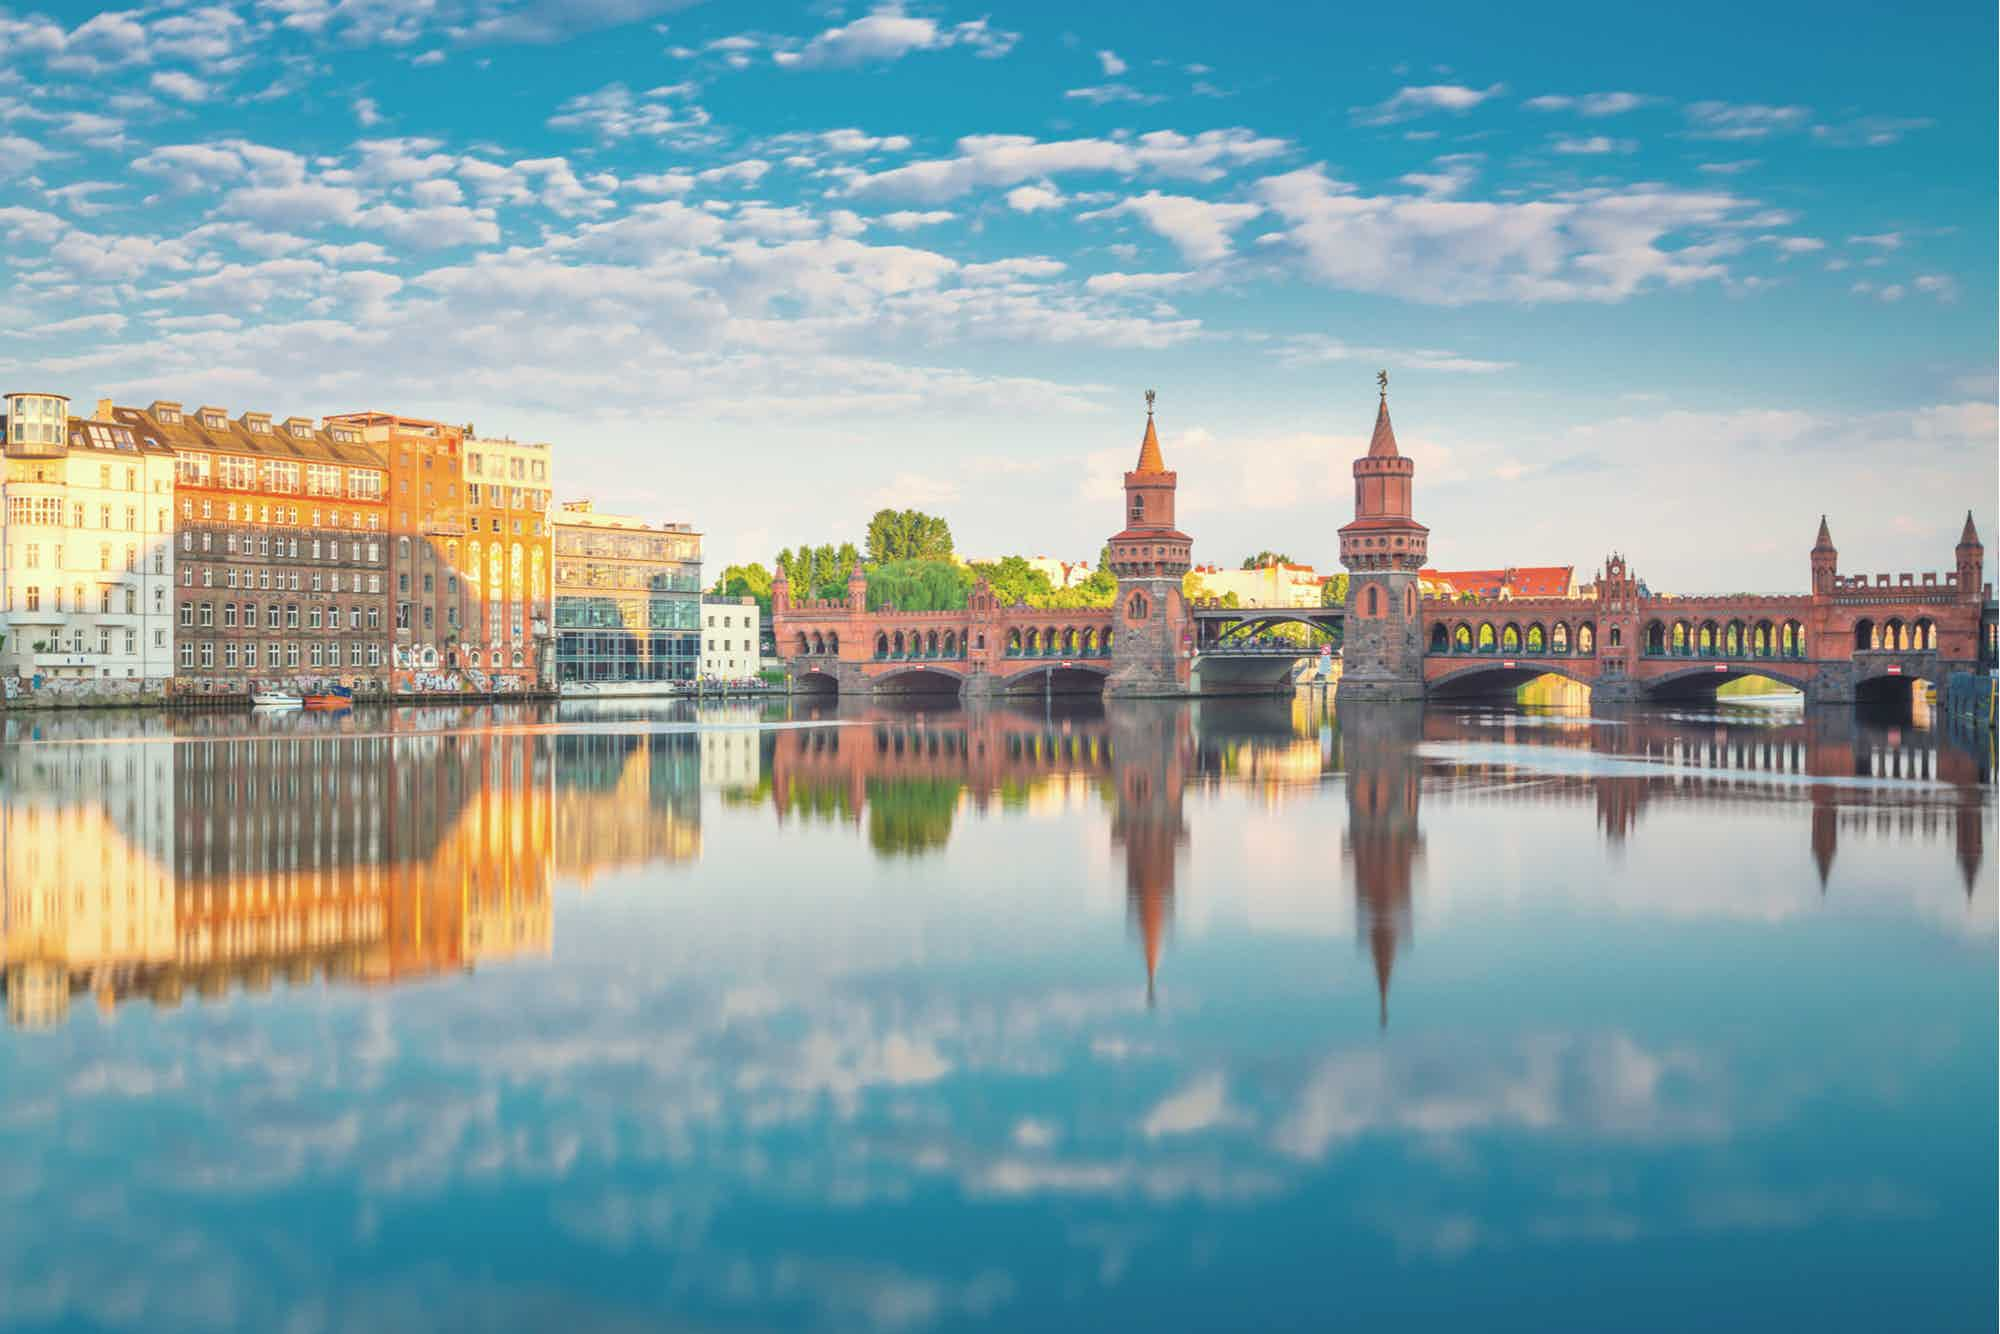 Berlin in summer time with the reflection of the clouds on the river